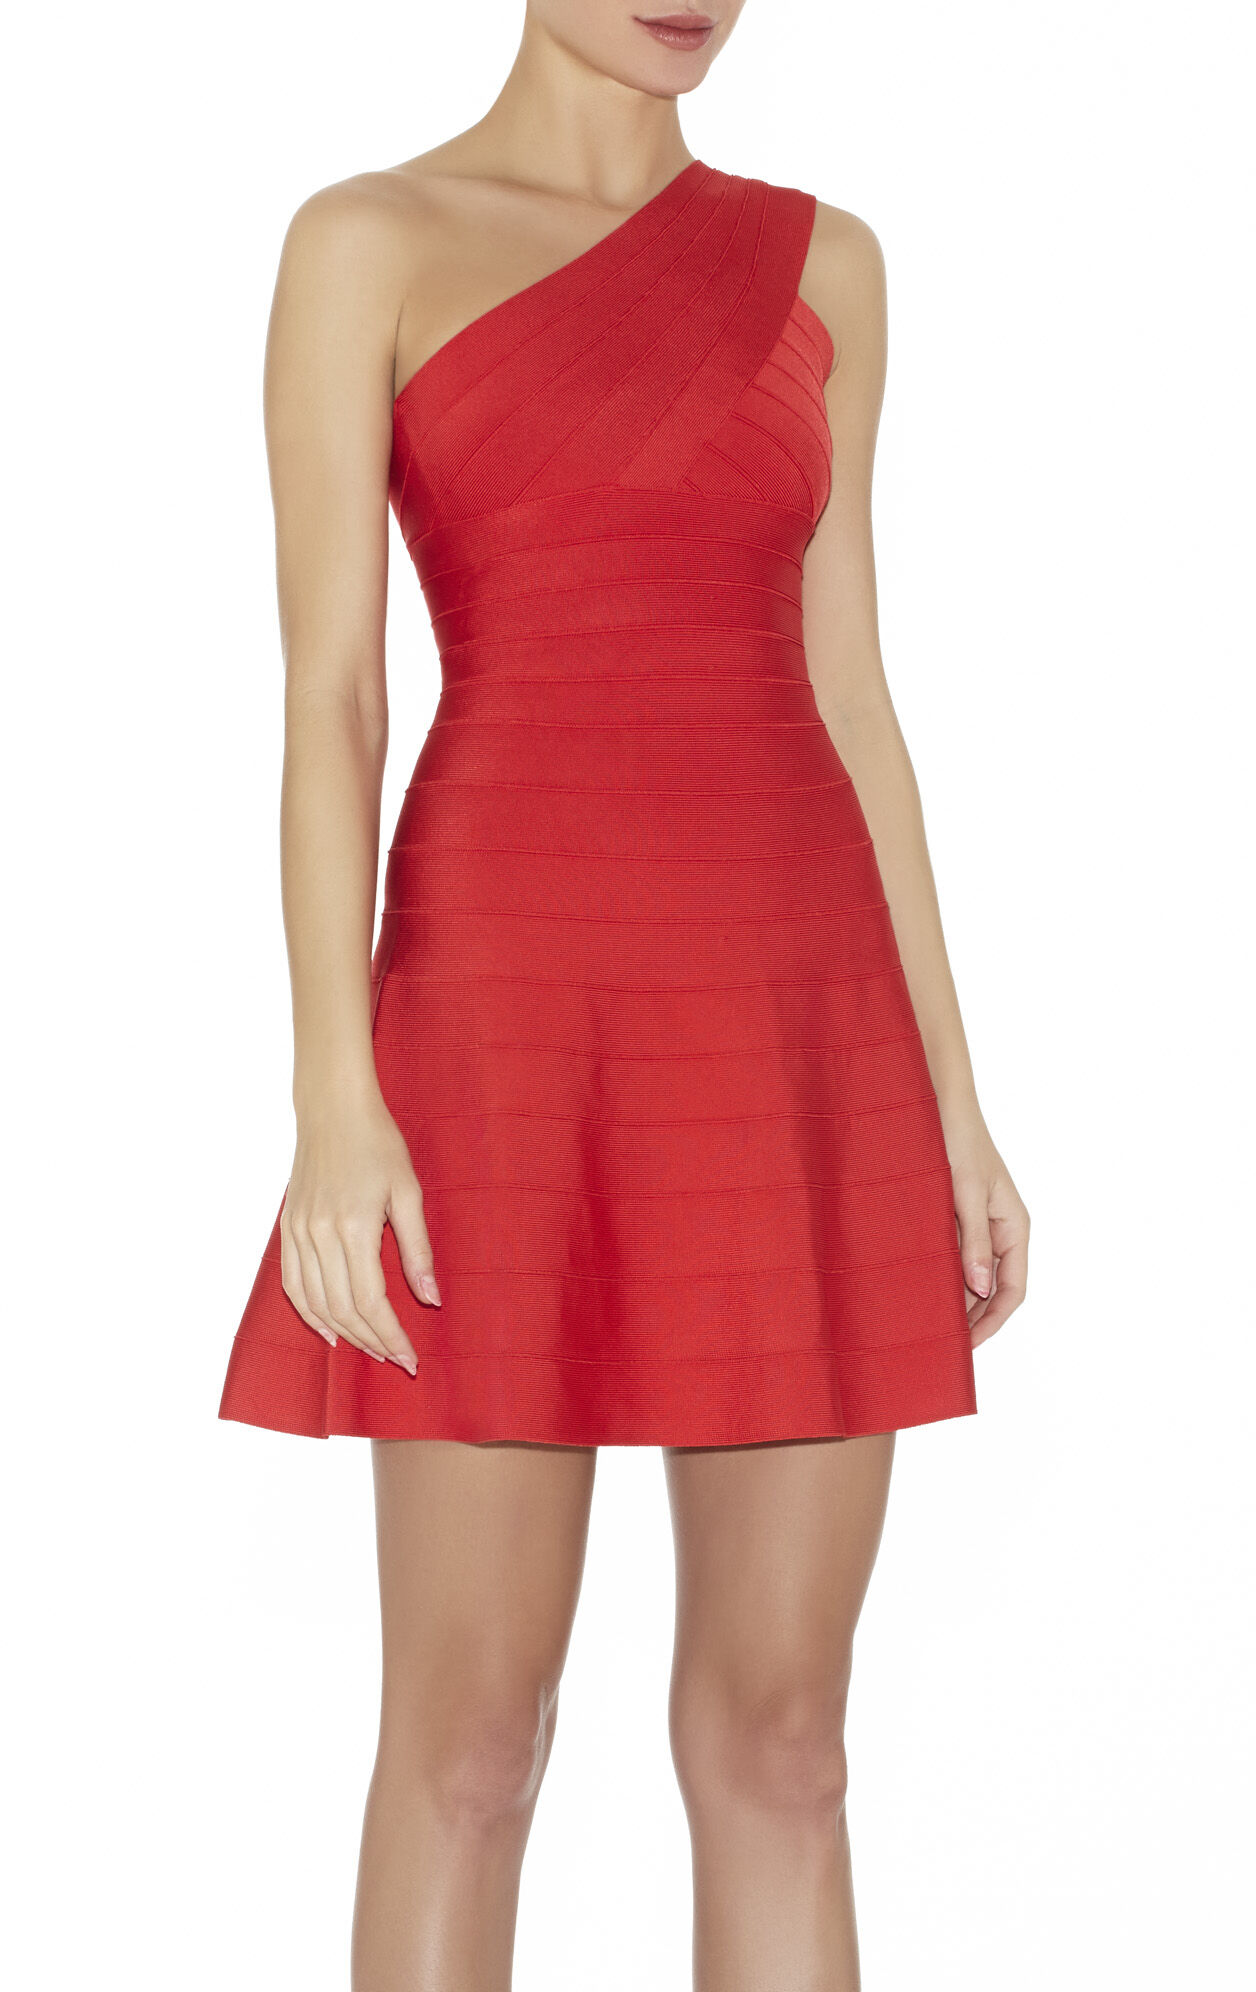 Sydney Signature One-Shoulder Bandage Dress